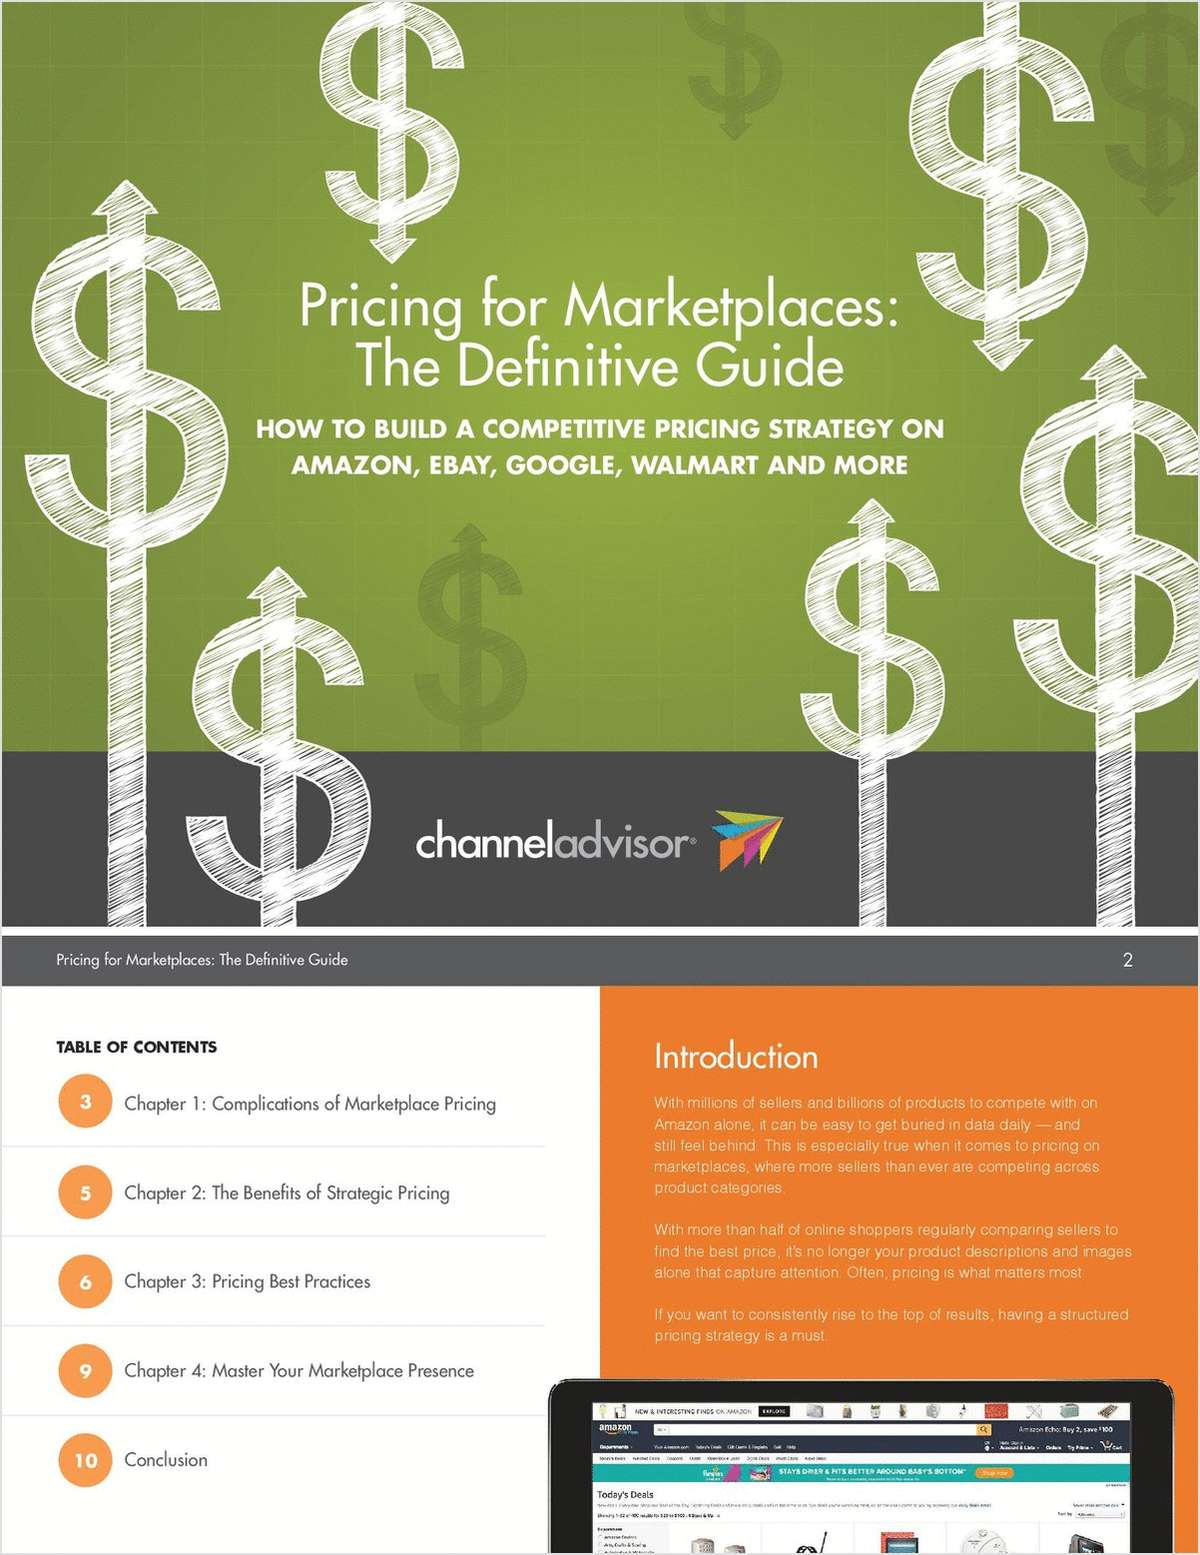 Pricing for Marketplaces: The Definitive Guide